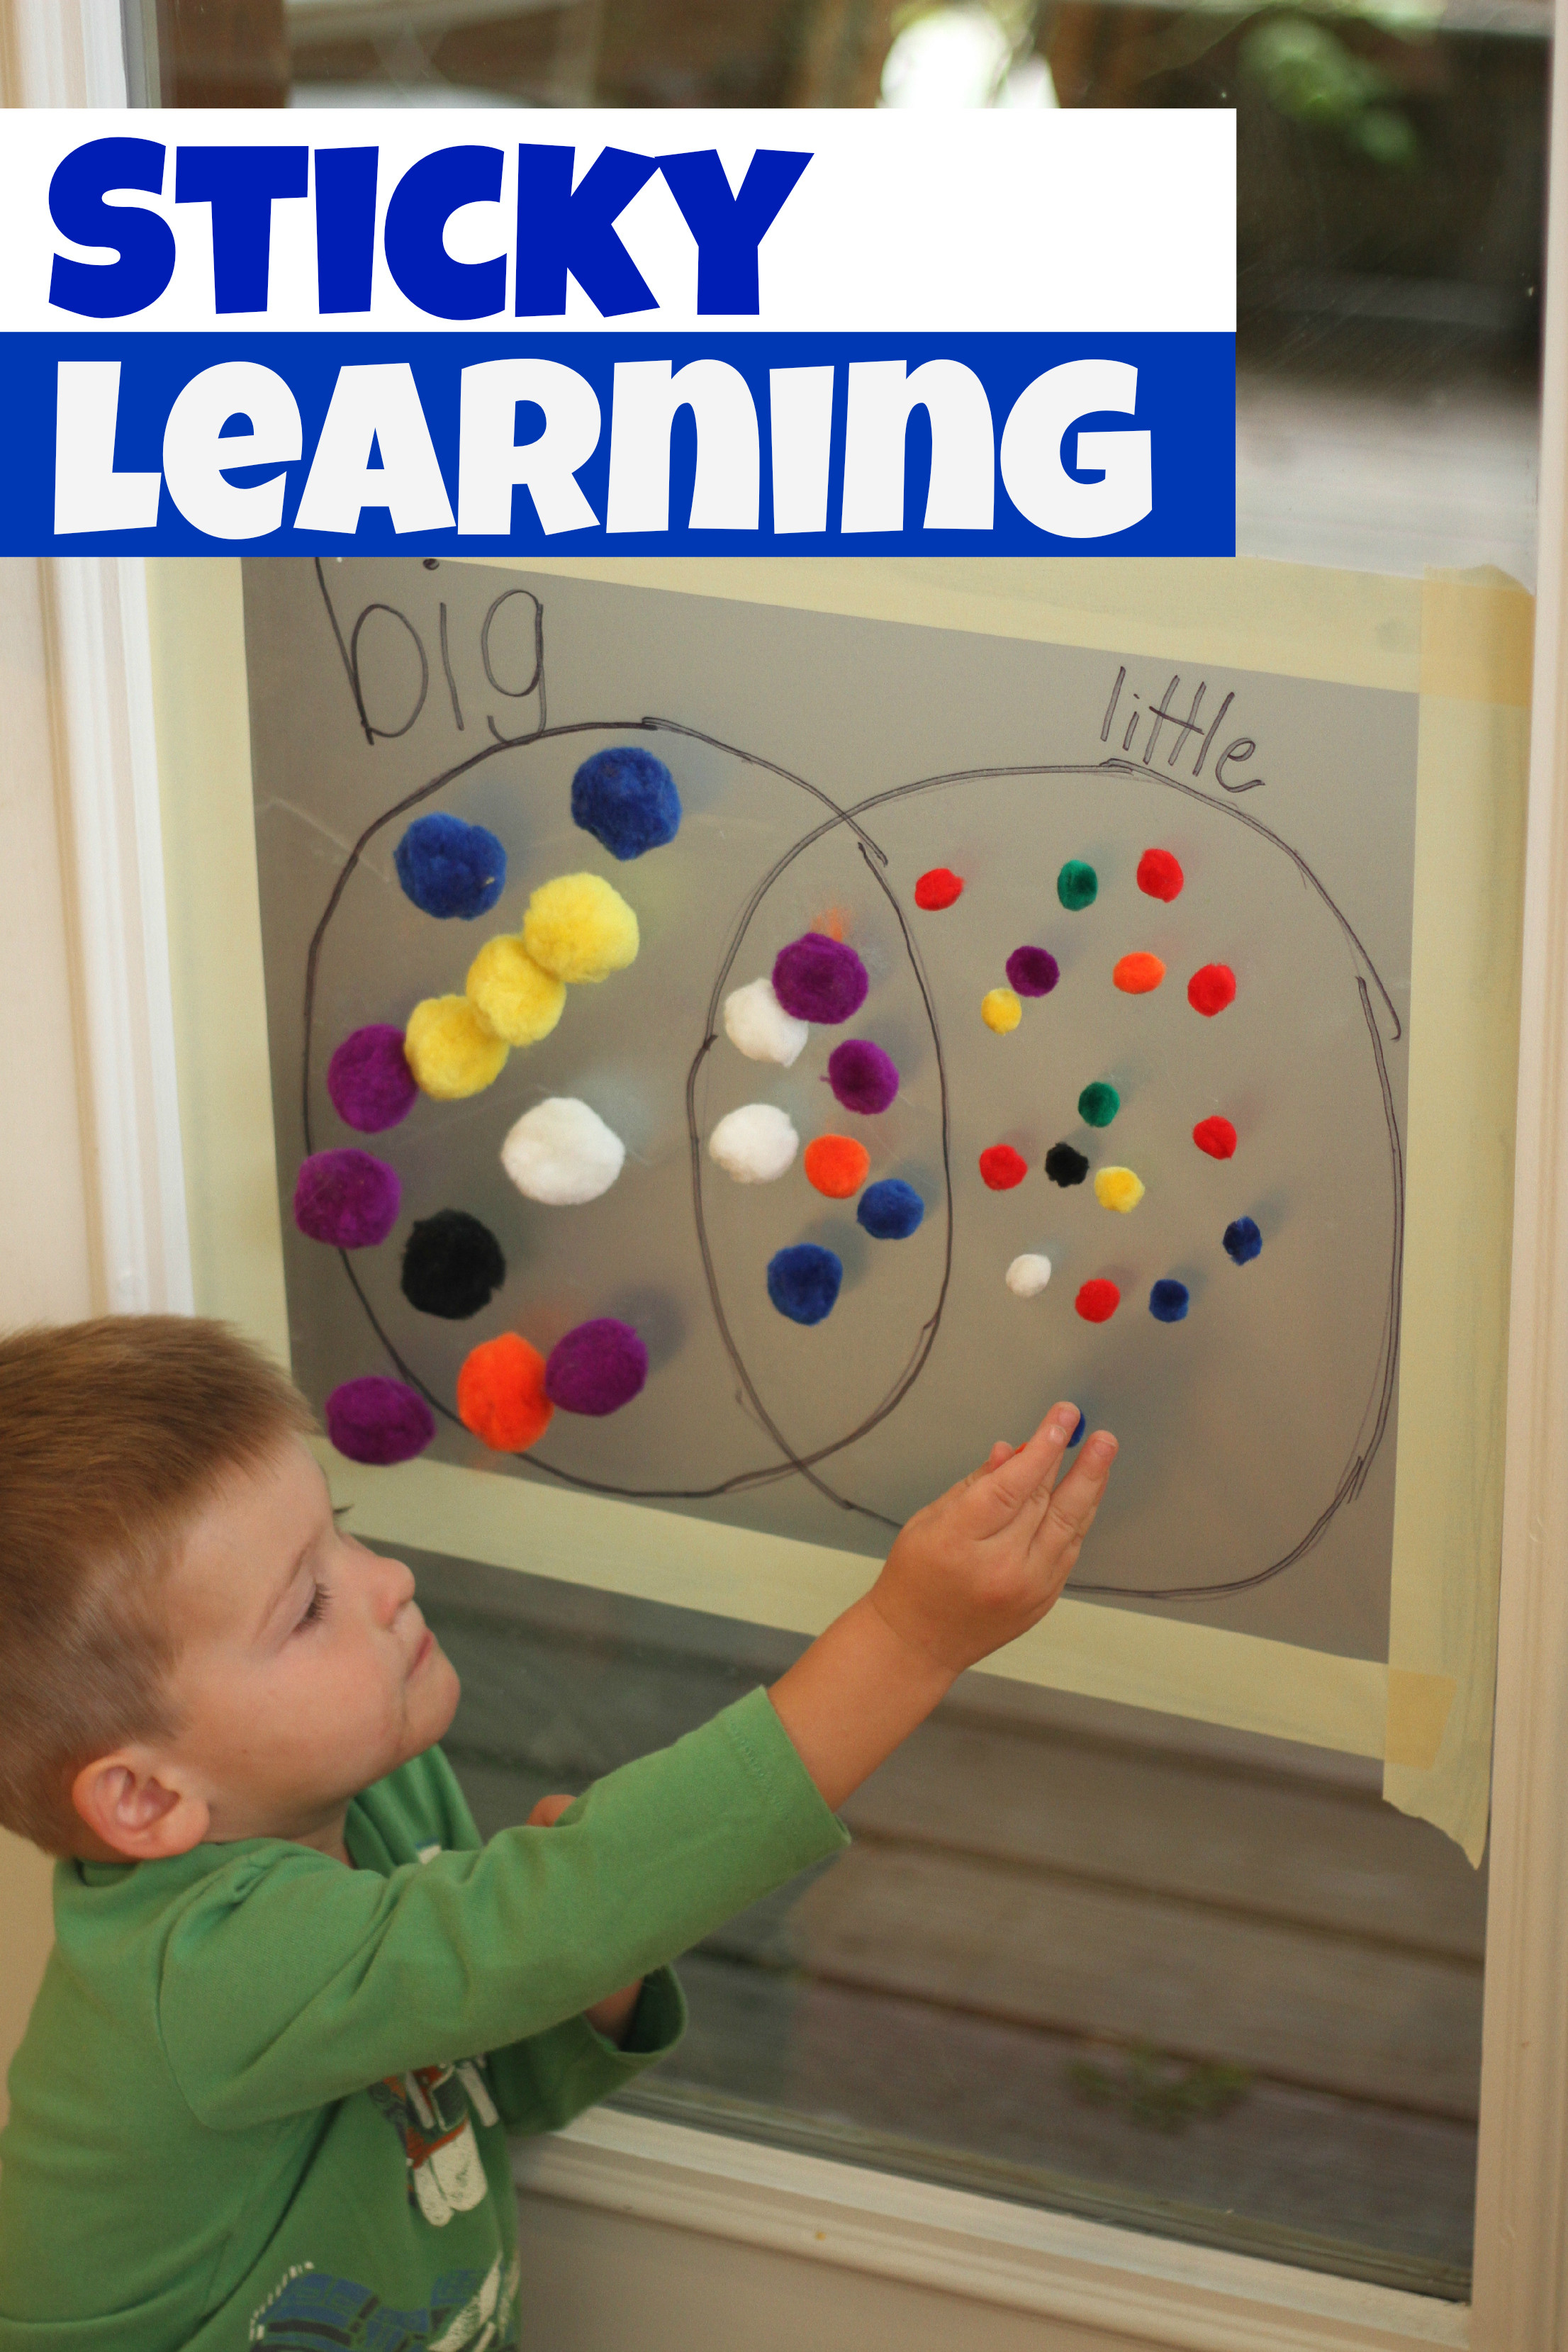 Best ideas about Learning Crafts For Preschoolers . Save or Pin Sticky Learning Now.